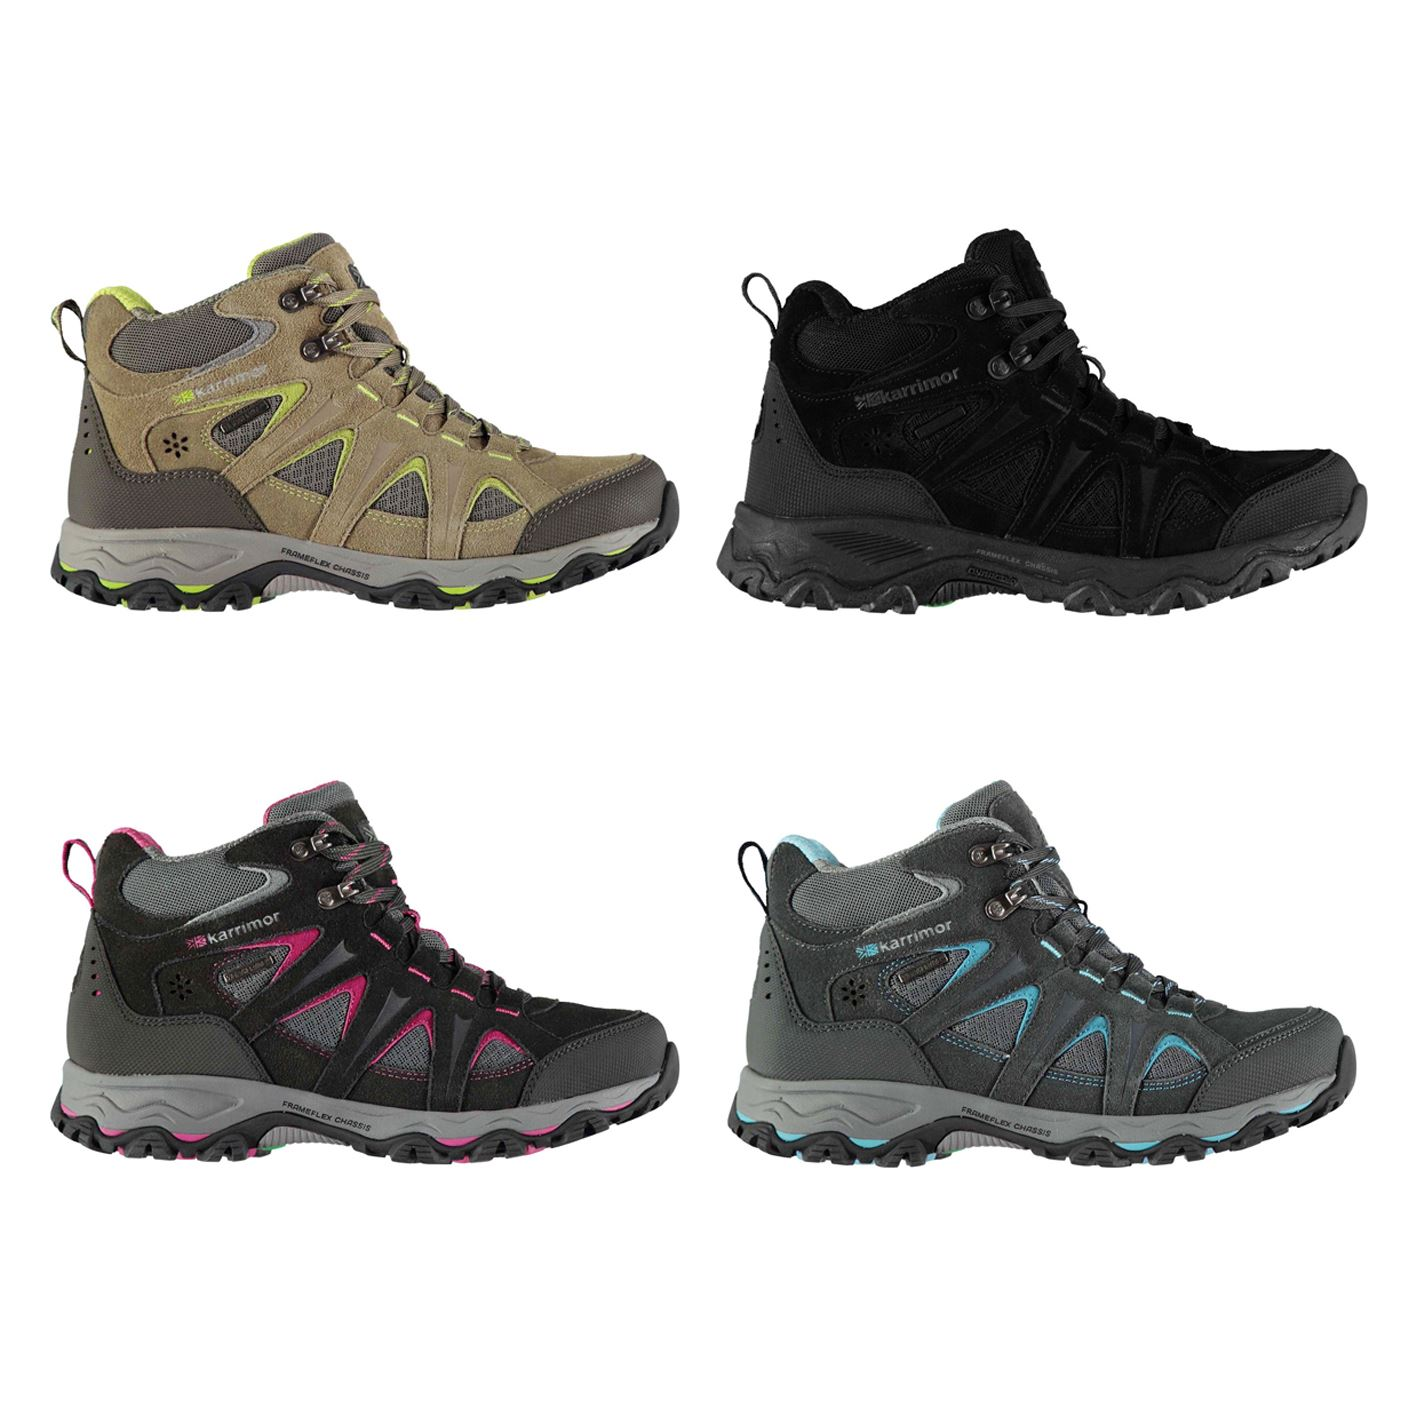 5ea23b00a7a Details about Karrimor Mountain WeatherTite Mid Walking Boots Womens Hiking  Trekking Shoes